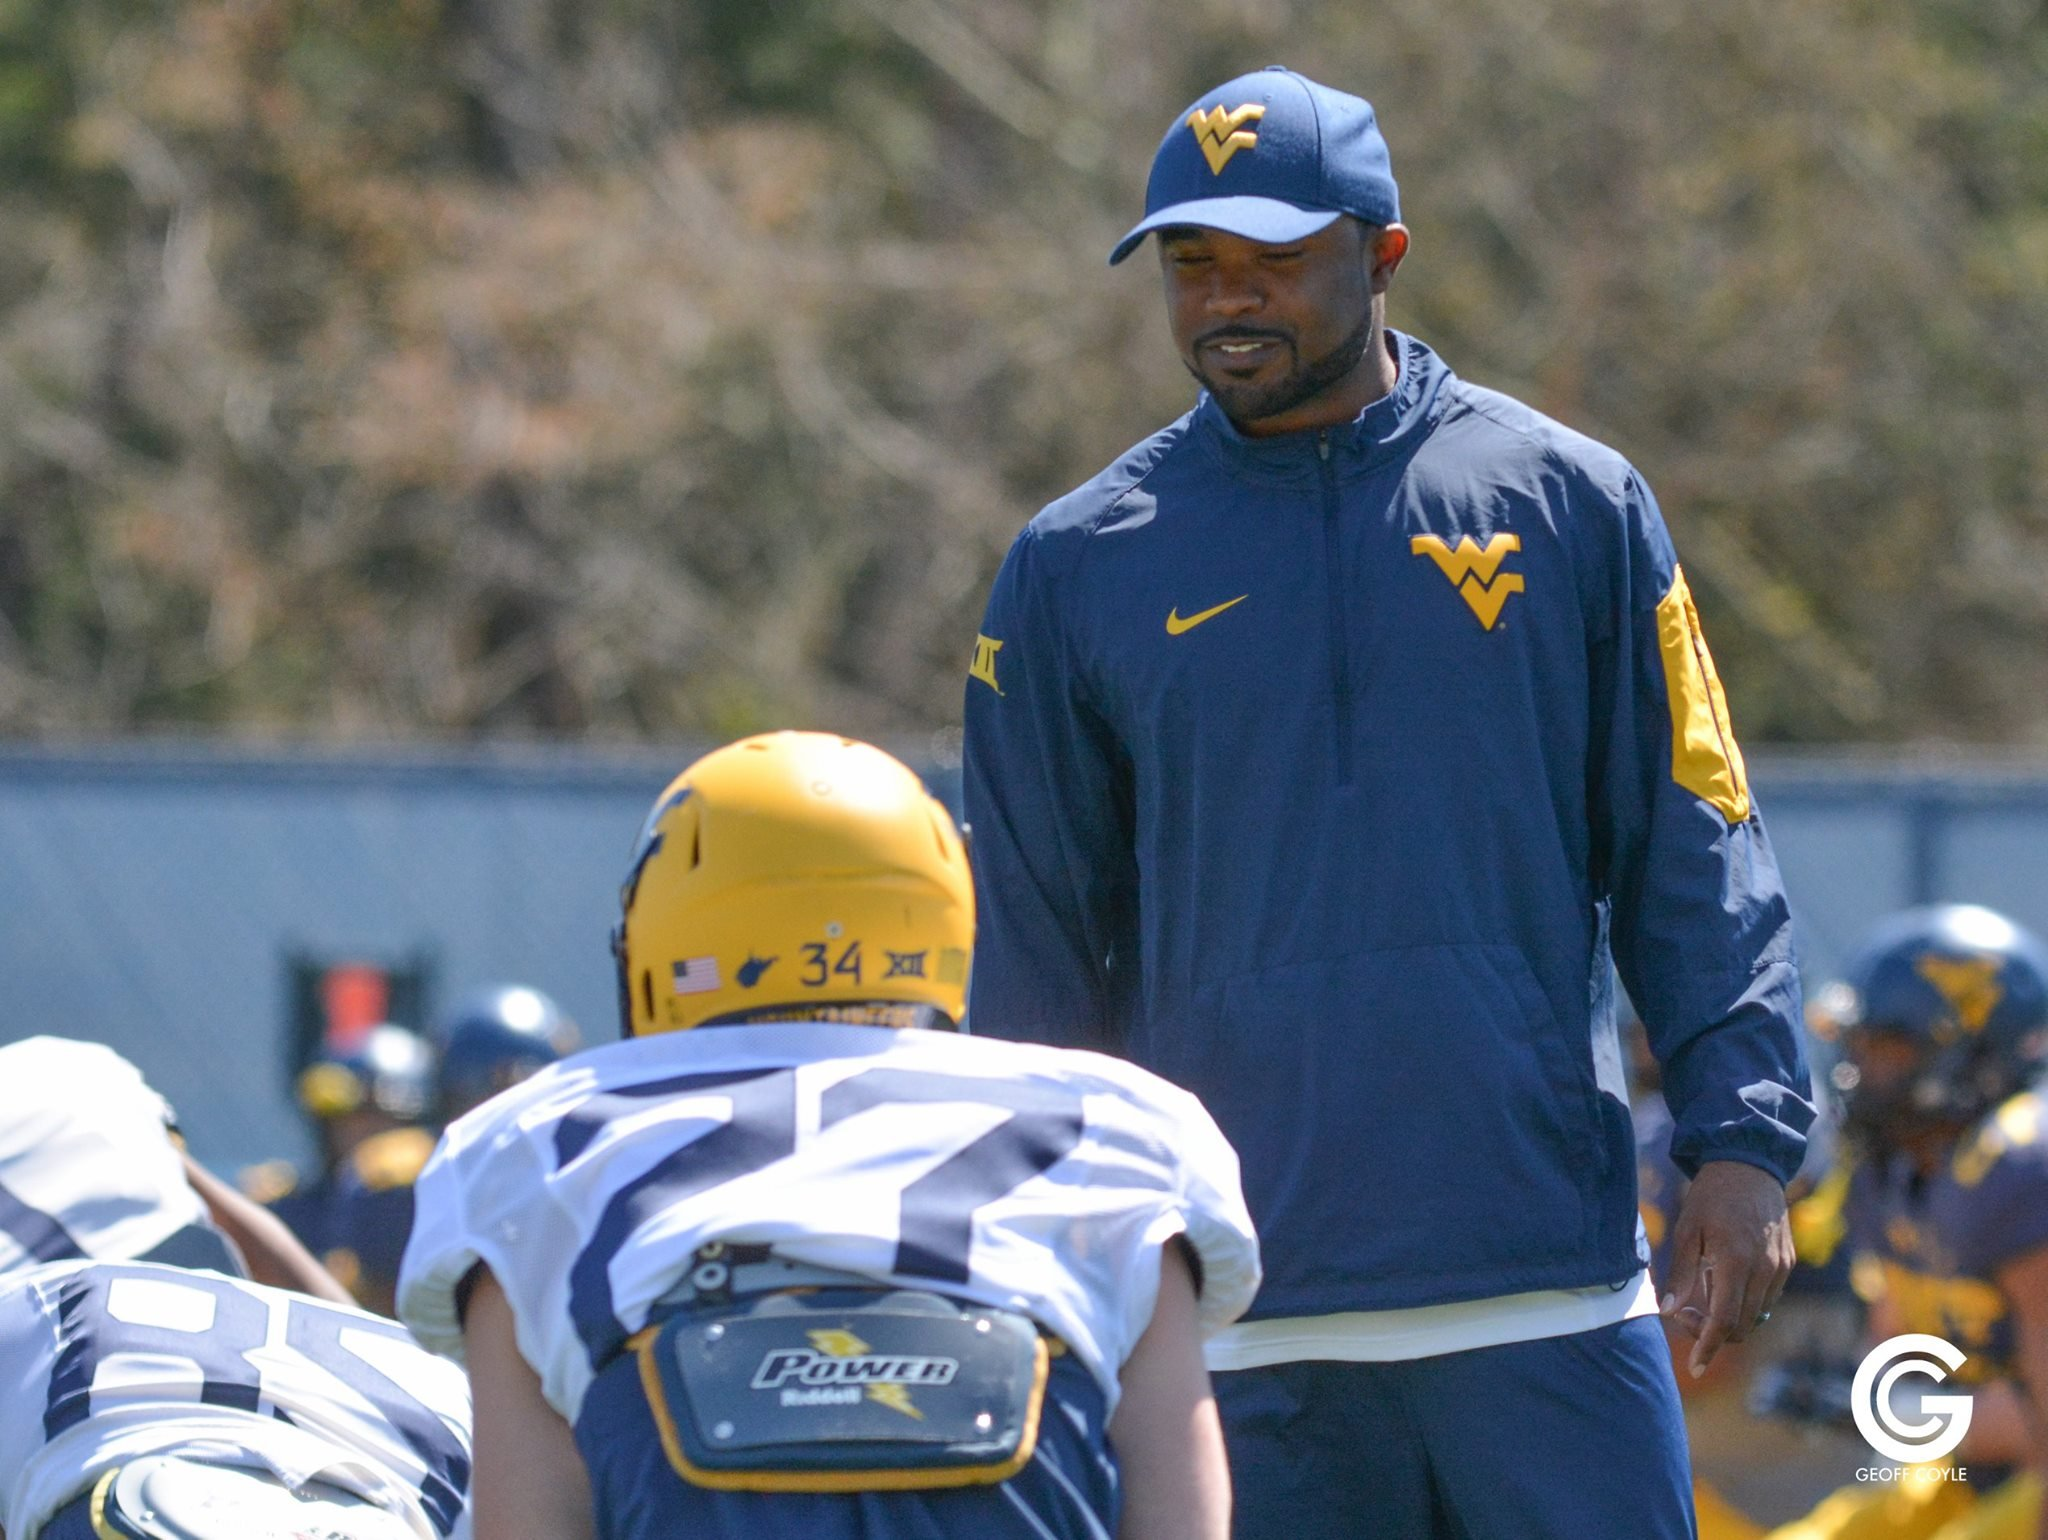 Tyron Carrier and the Mountaineers prepare for the season opener. (PHOTO: Geoff Coyle)